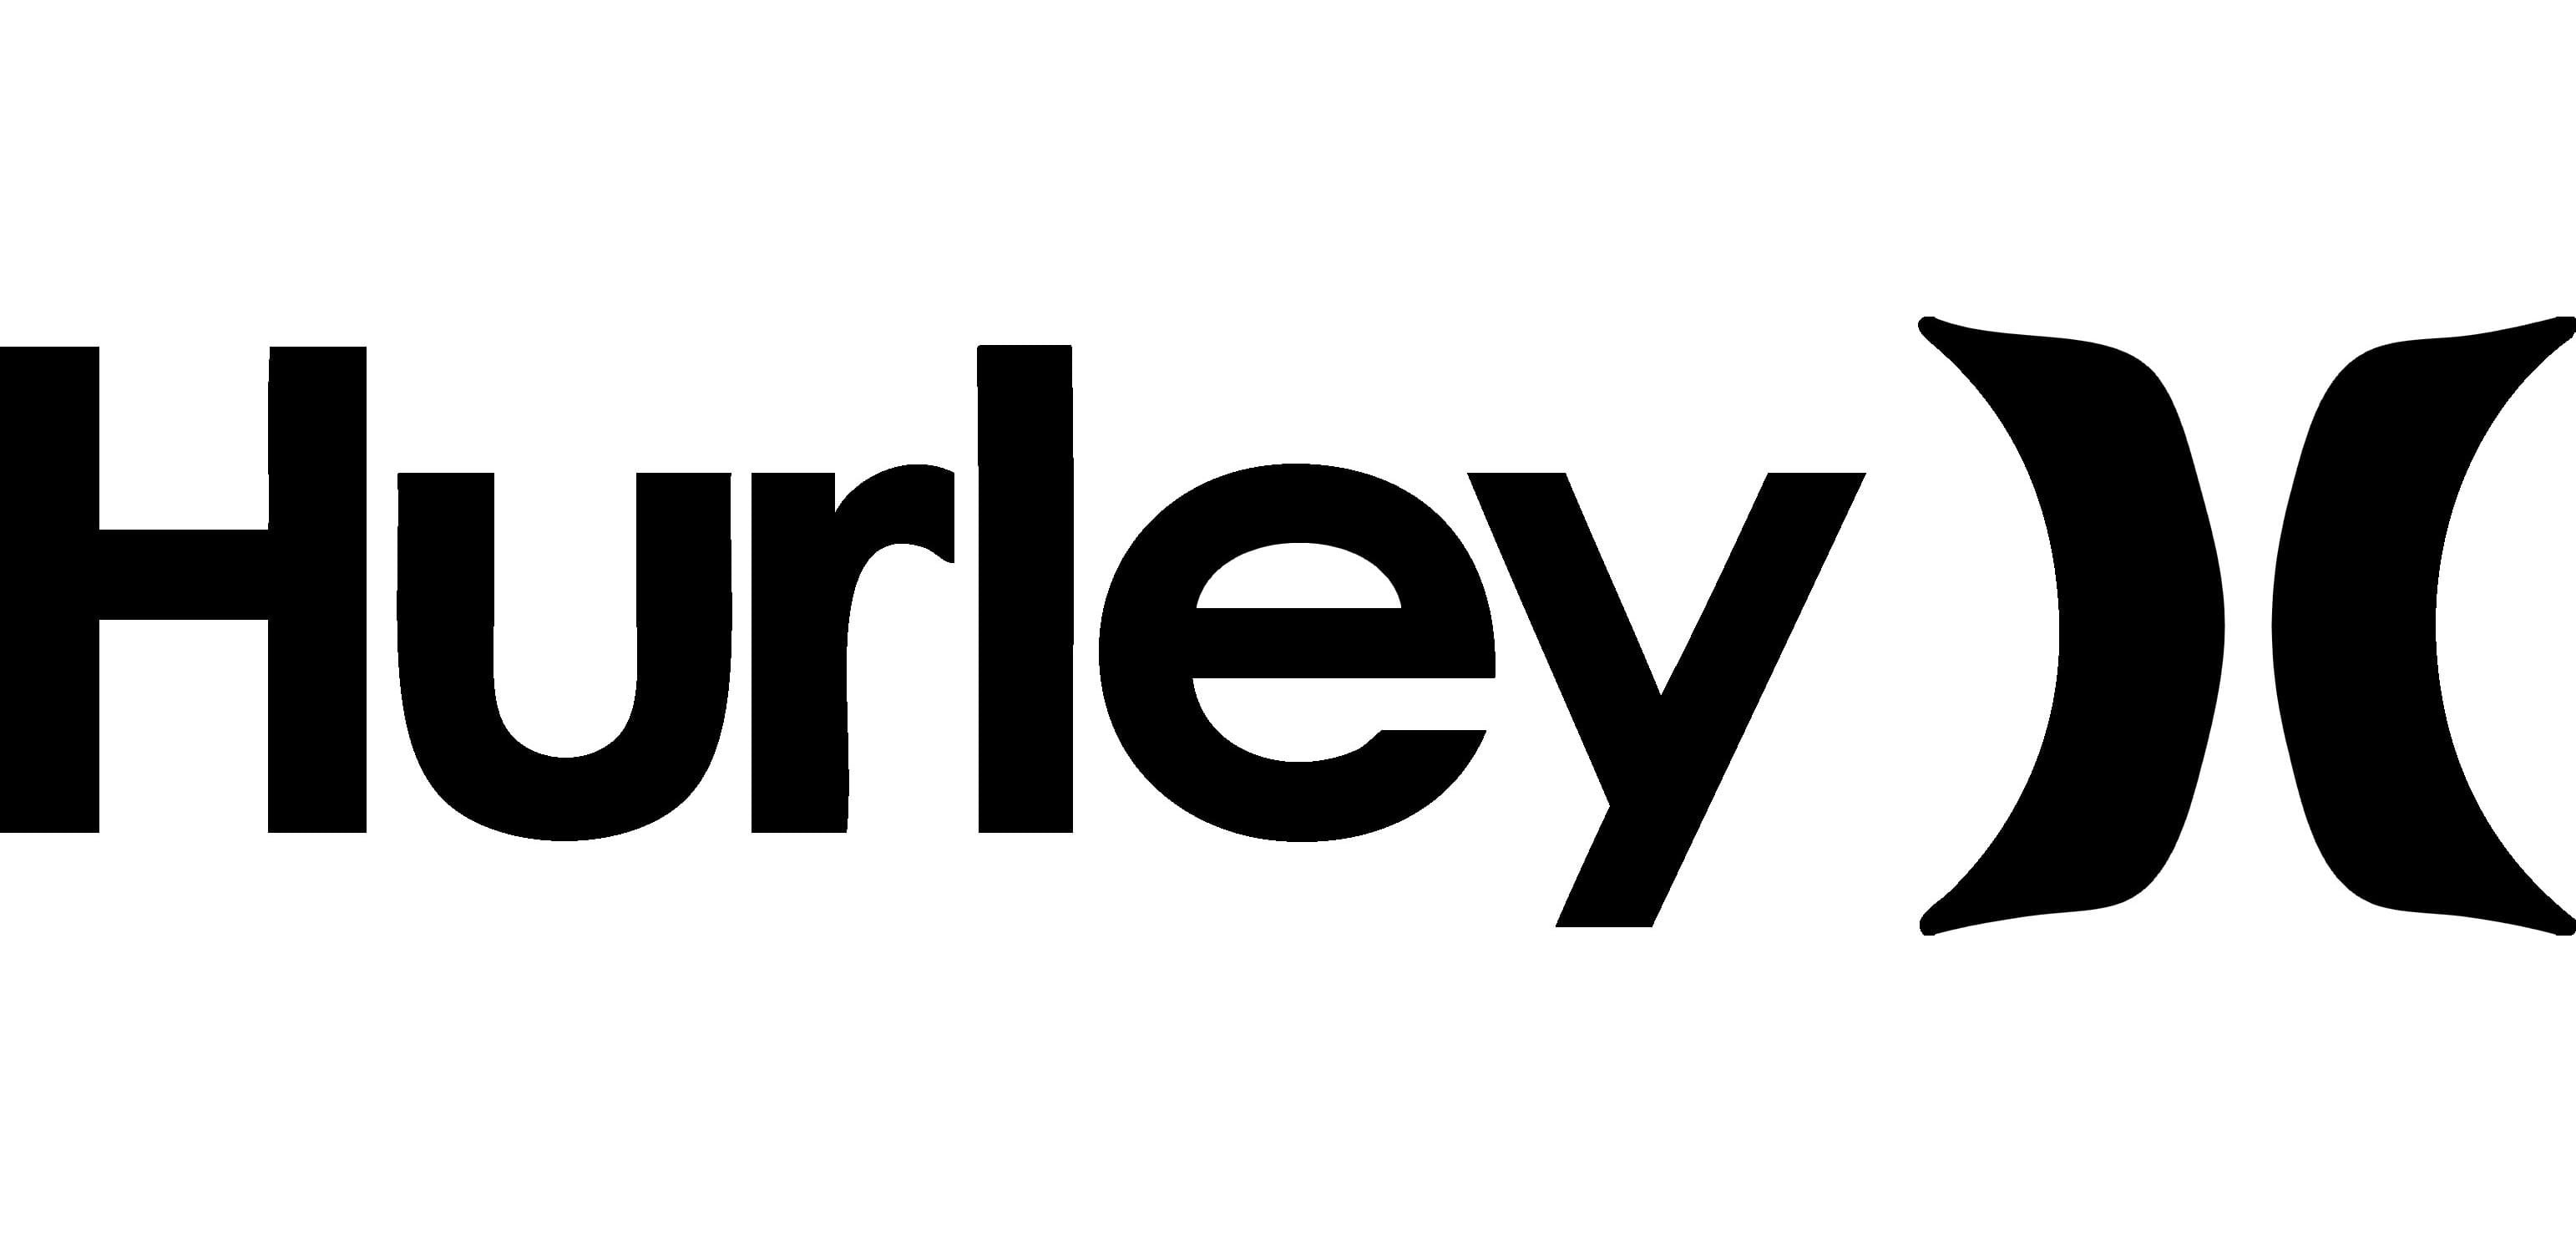 Hurley: Stand Up Paddle Boards for Your Next Water Adventure